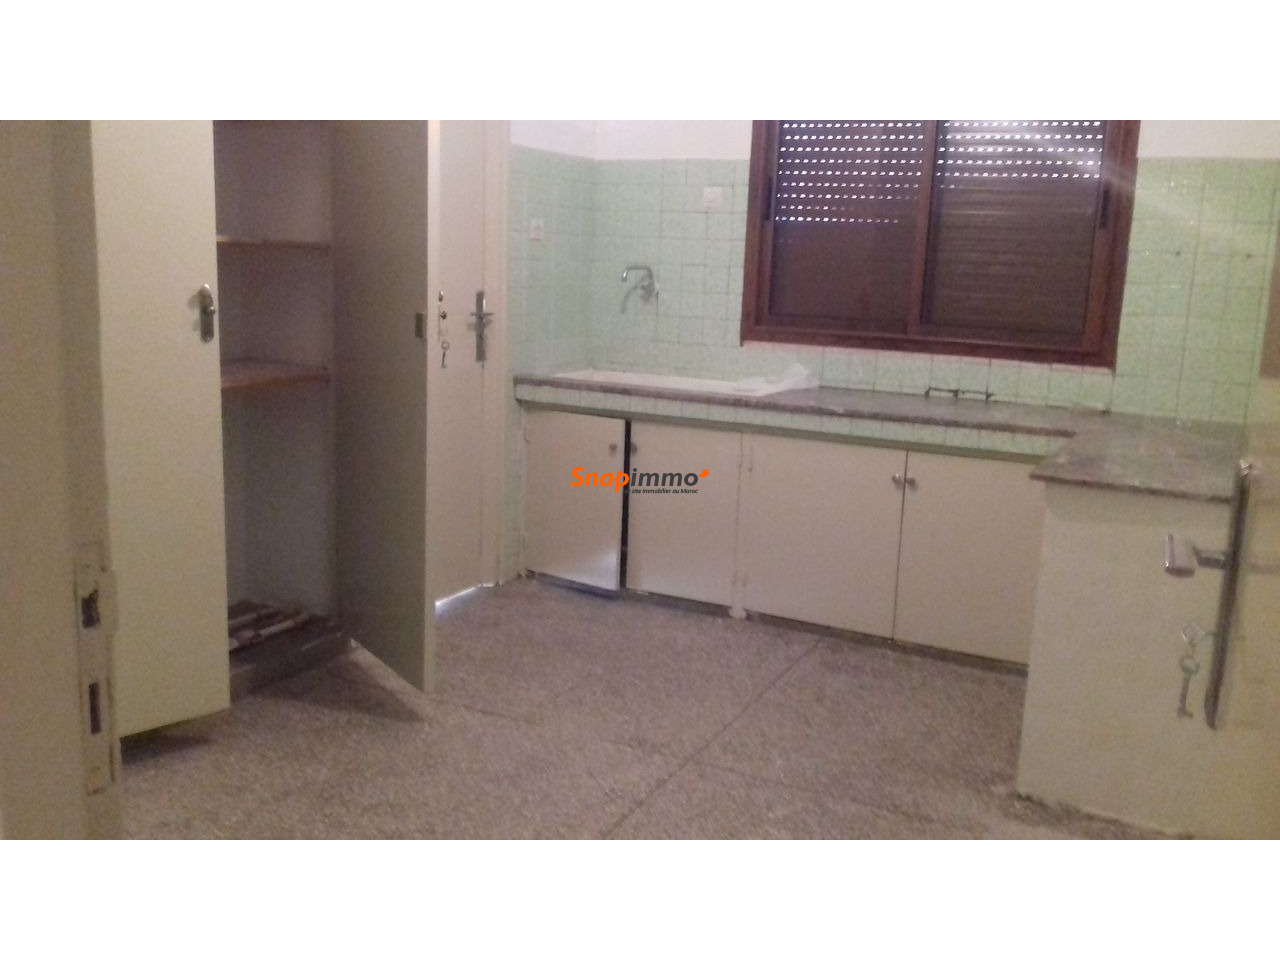 appartement a louer situer a agdal - 5/6